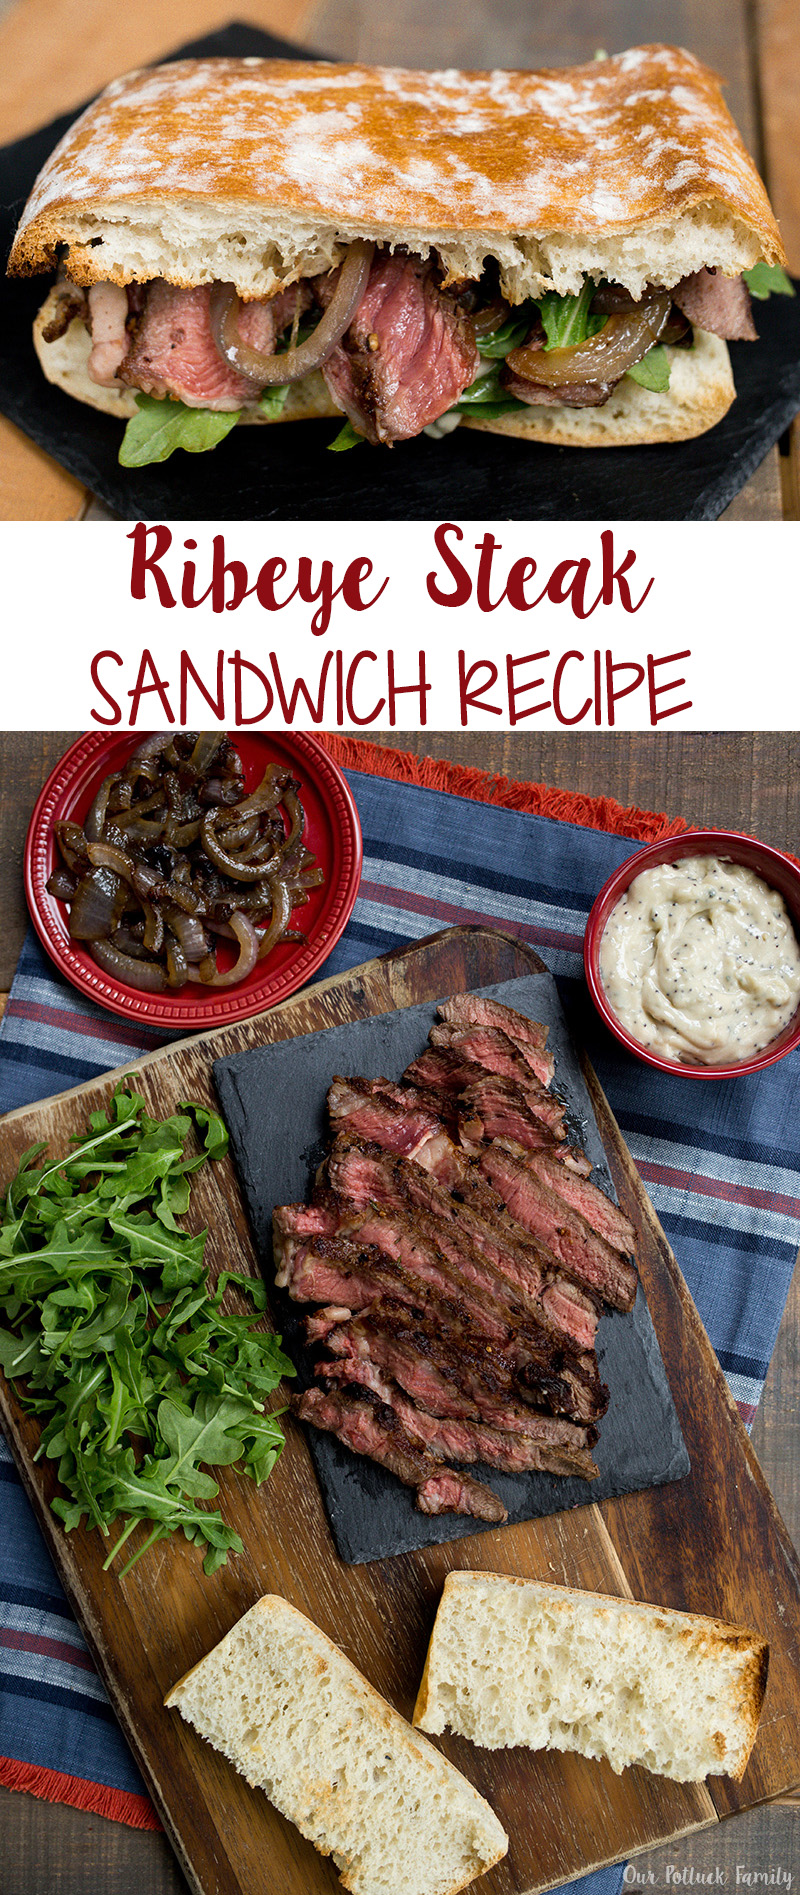 Ribeye Steak Sandwich Recipe